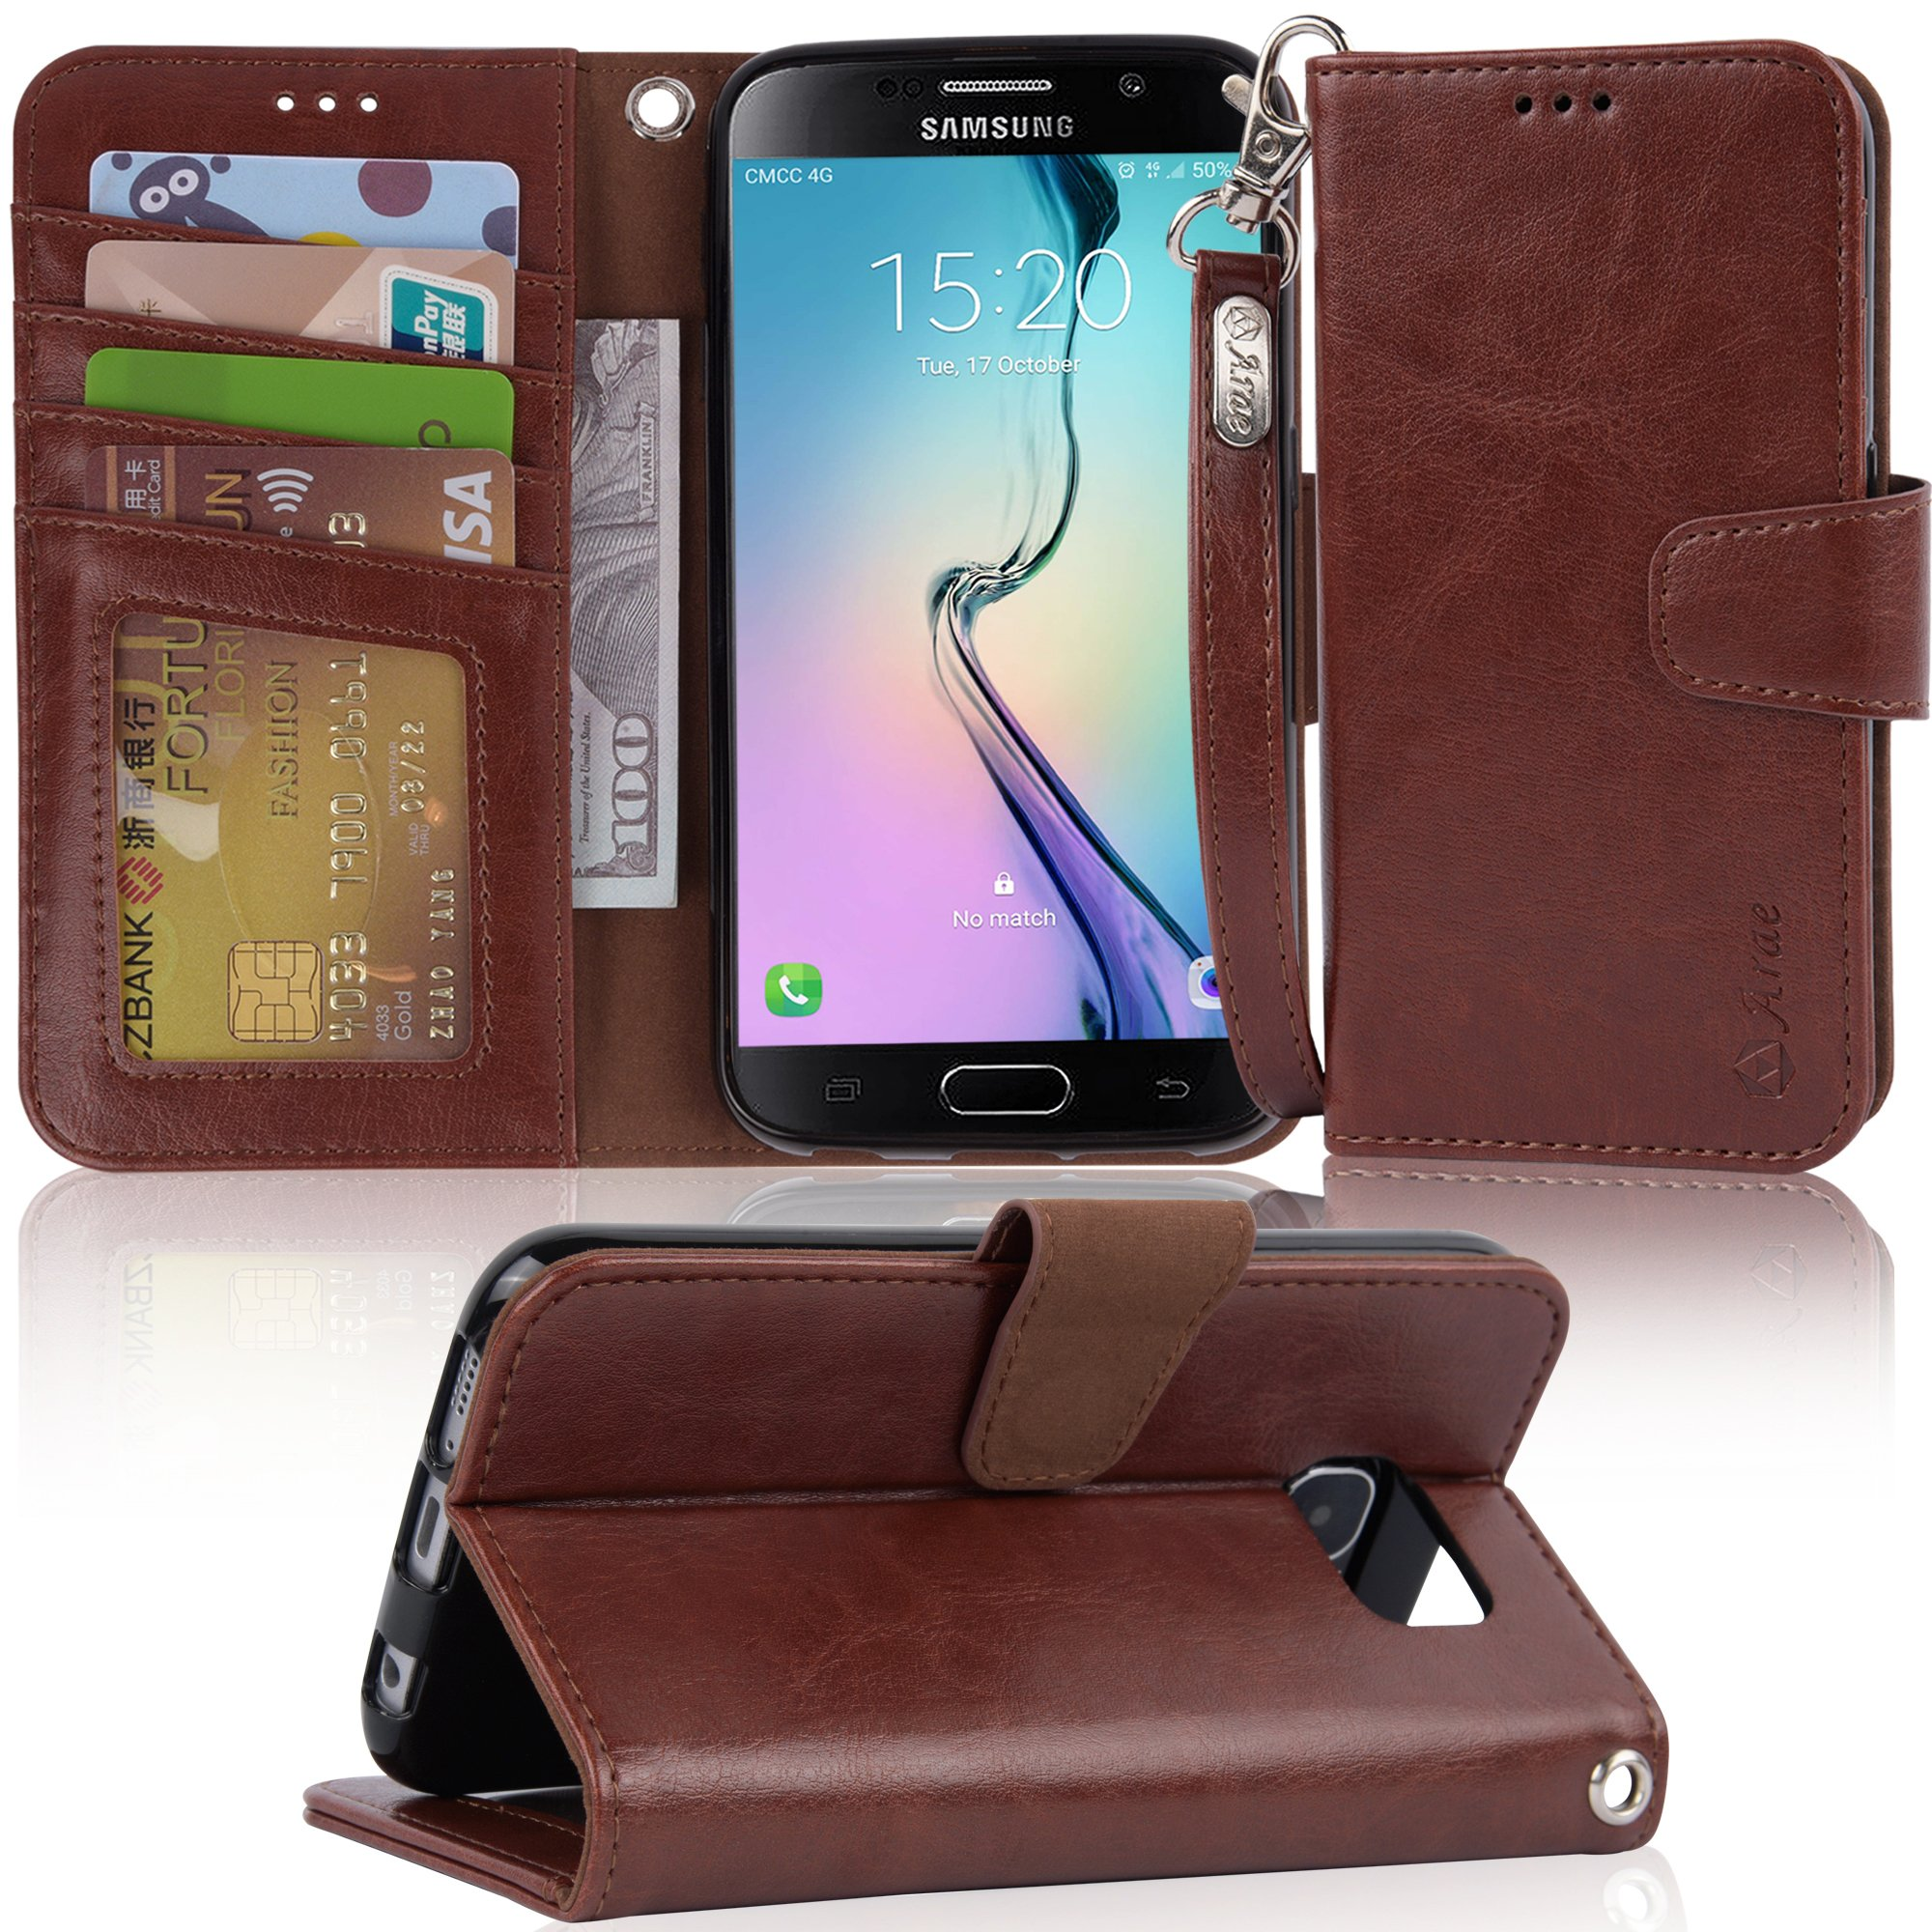 Galaxy S6 Case, Arae Samsung Galaxy S6 wallet case,[Wrist Strap] Flip Folio [Kickstand Feature] PU leather wallet case with ID&Credit Card Pockets For Samsung Galaxy S6 (Brown)